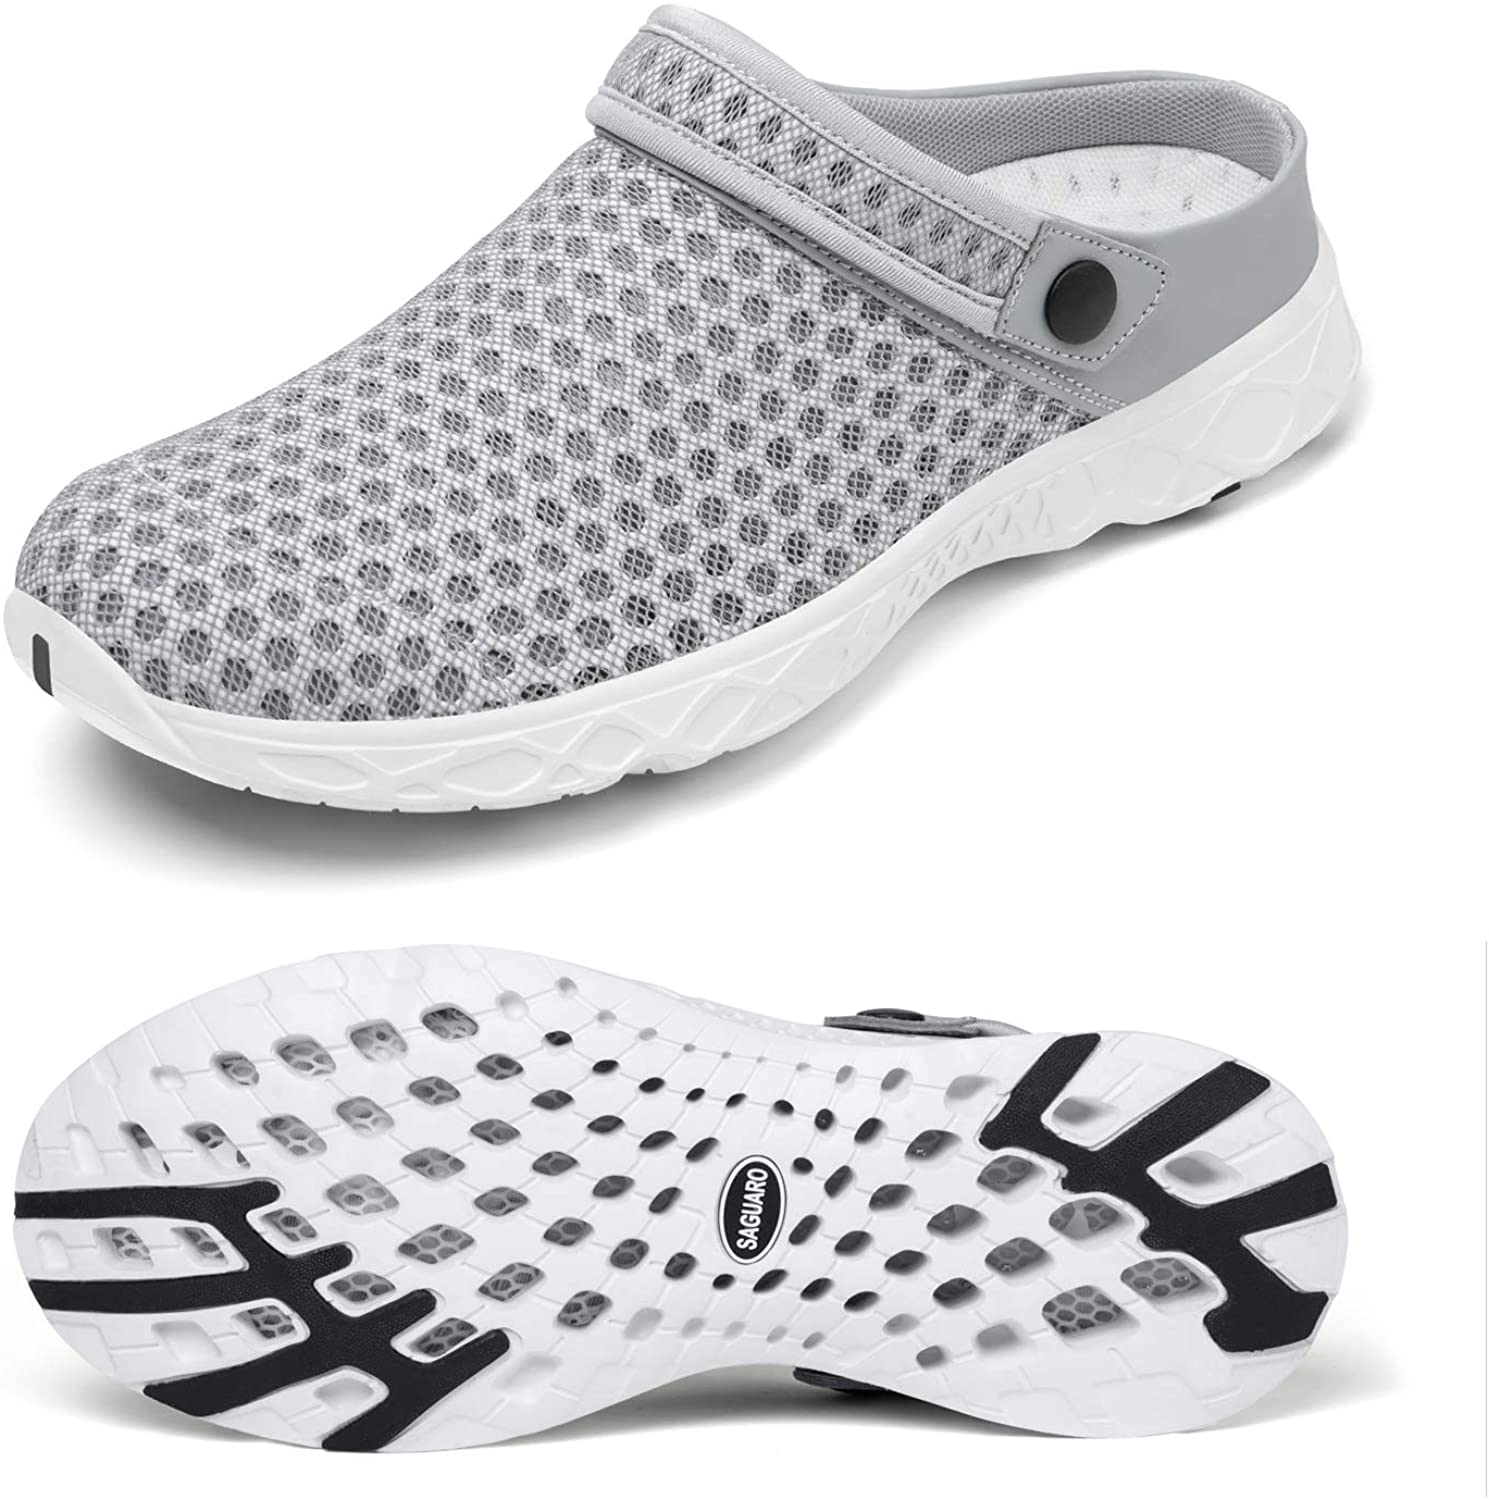 SAGUARO Unisex Garden Clogs Shoes Casual Slippers Womens Mens Quick Drying Sandals Summer Anti-Slip Beach Shoes